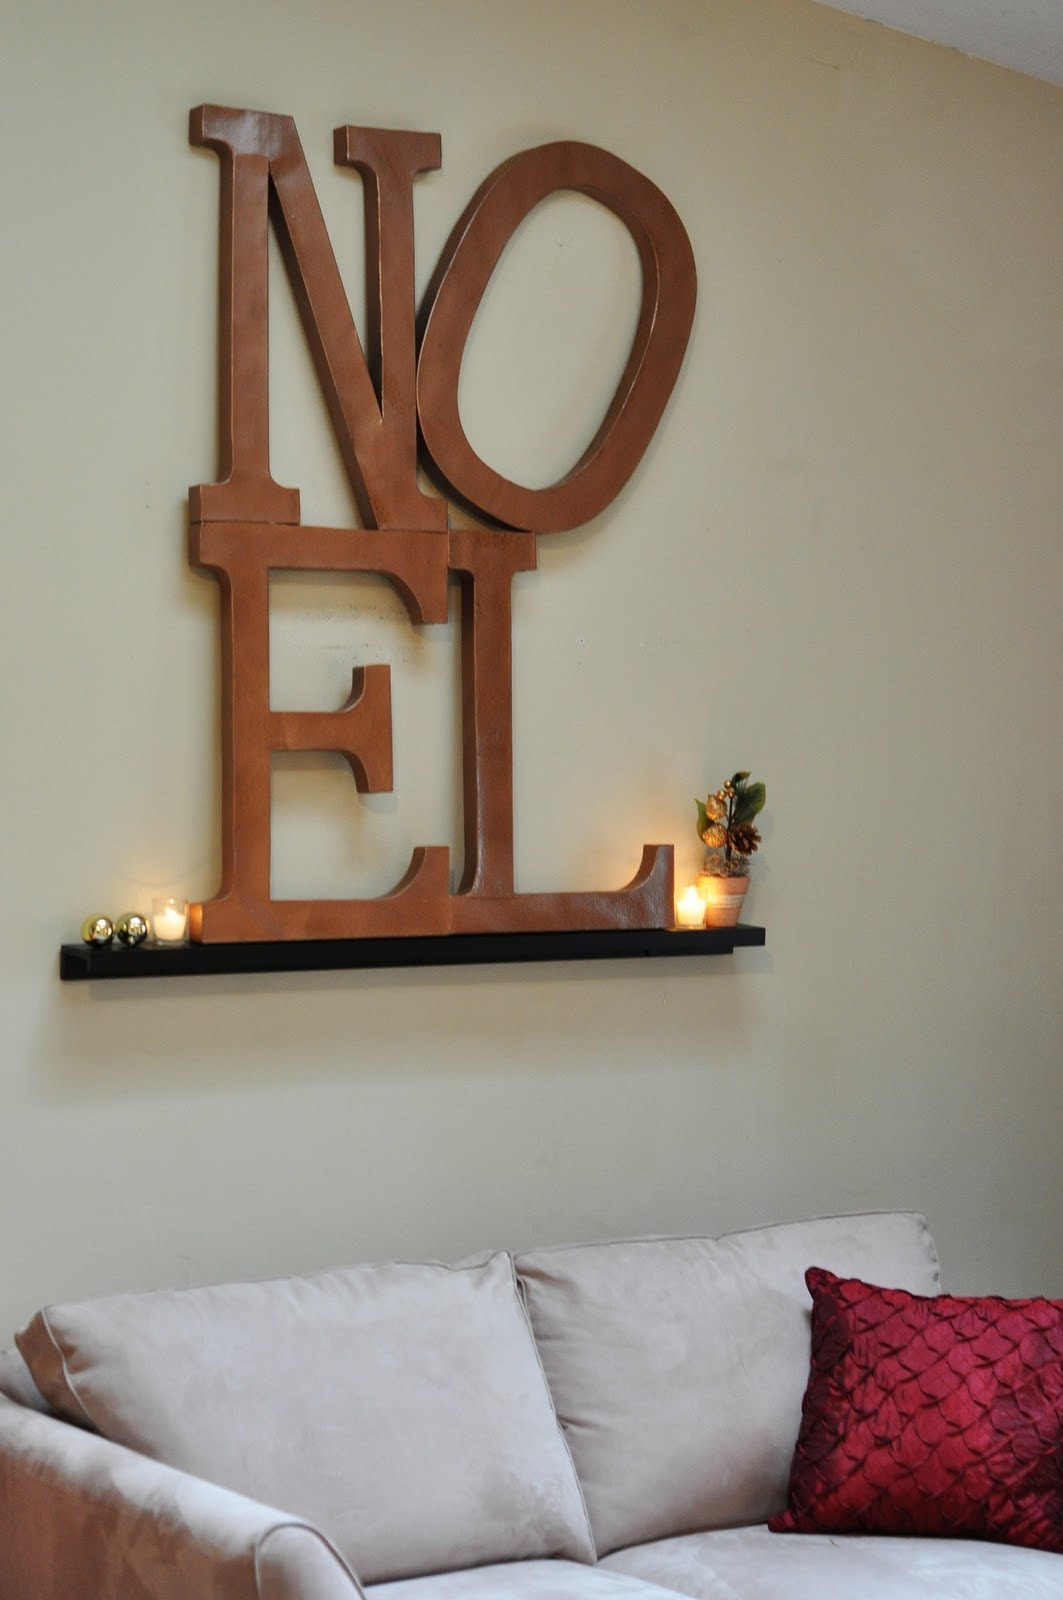 How to make your own NOEL Word Art! Super easy and cheap! Paper mache letters and some rustoleum makes for great decor!